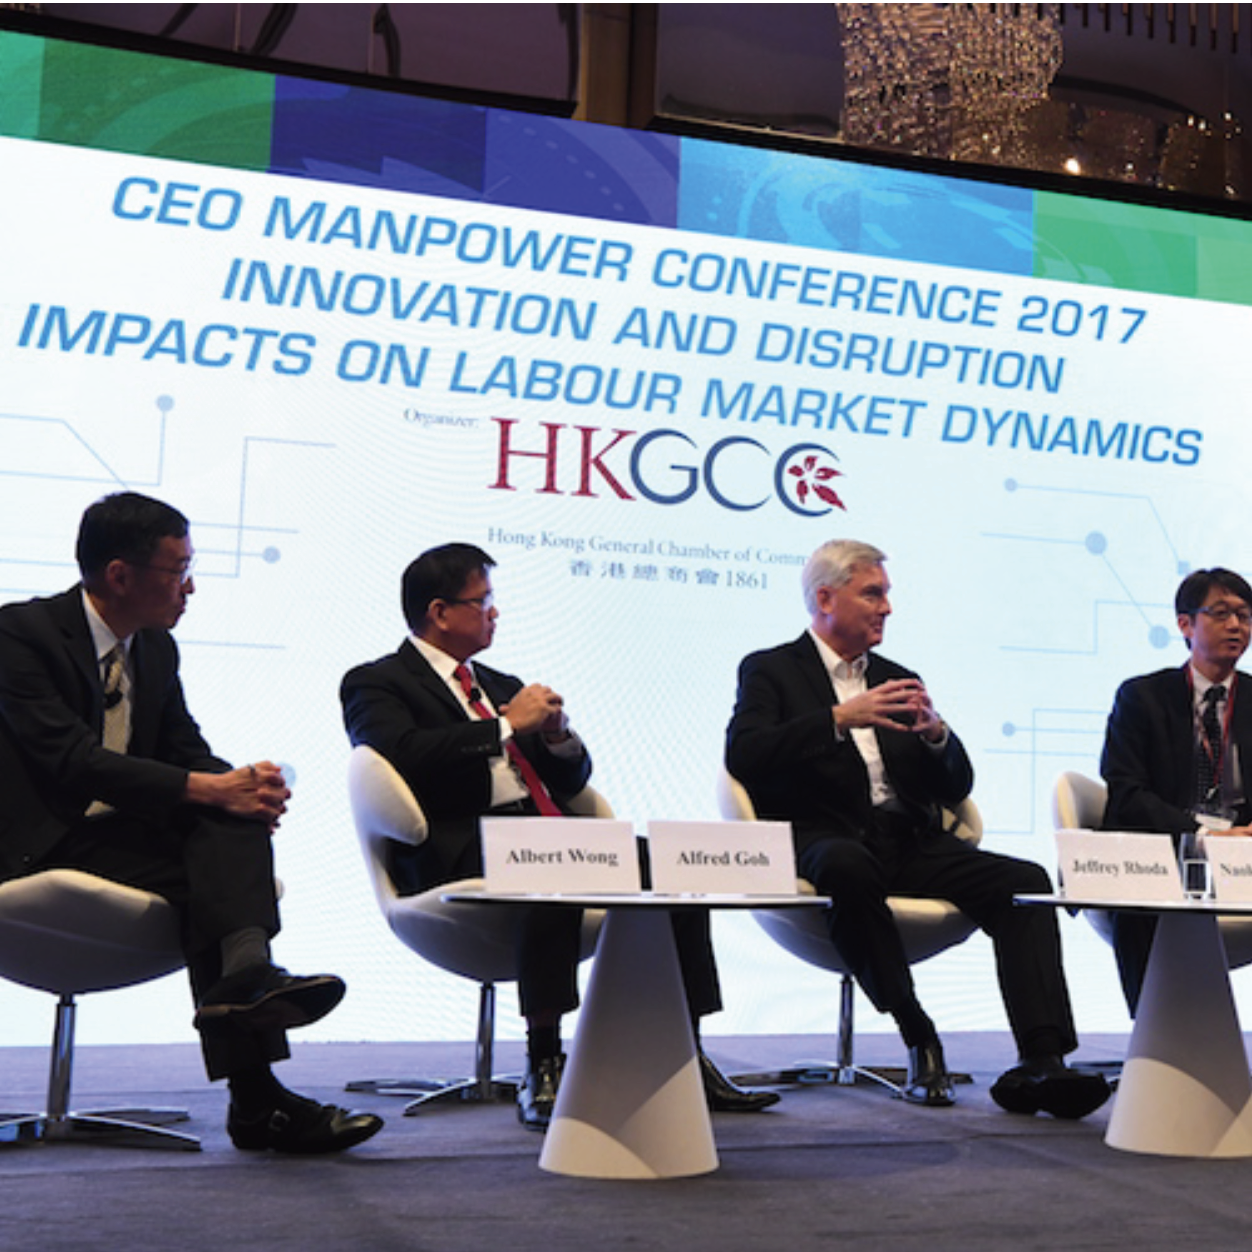 CEO Manpower Conference